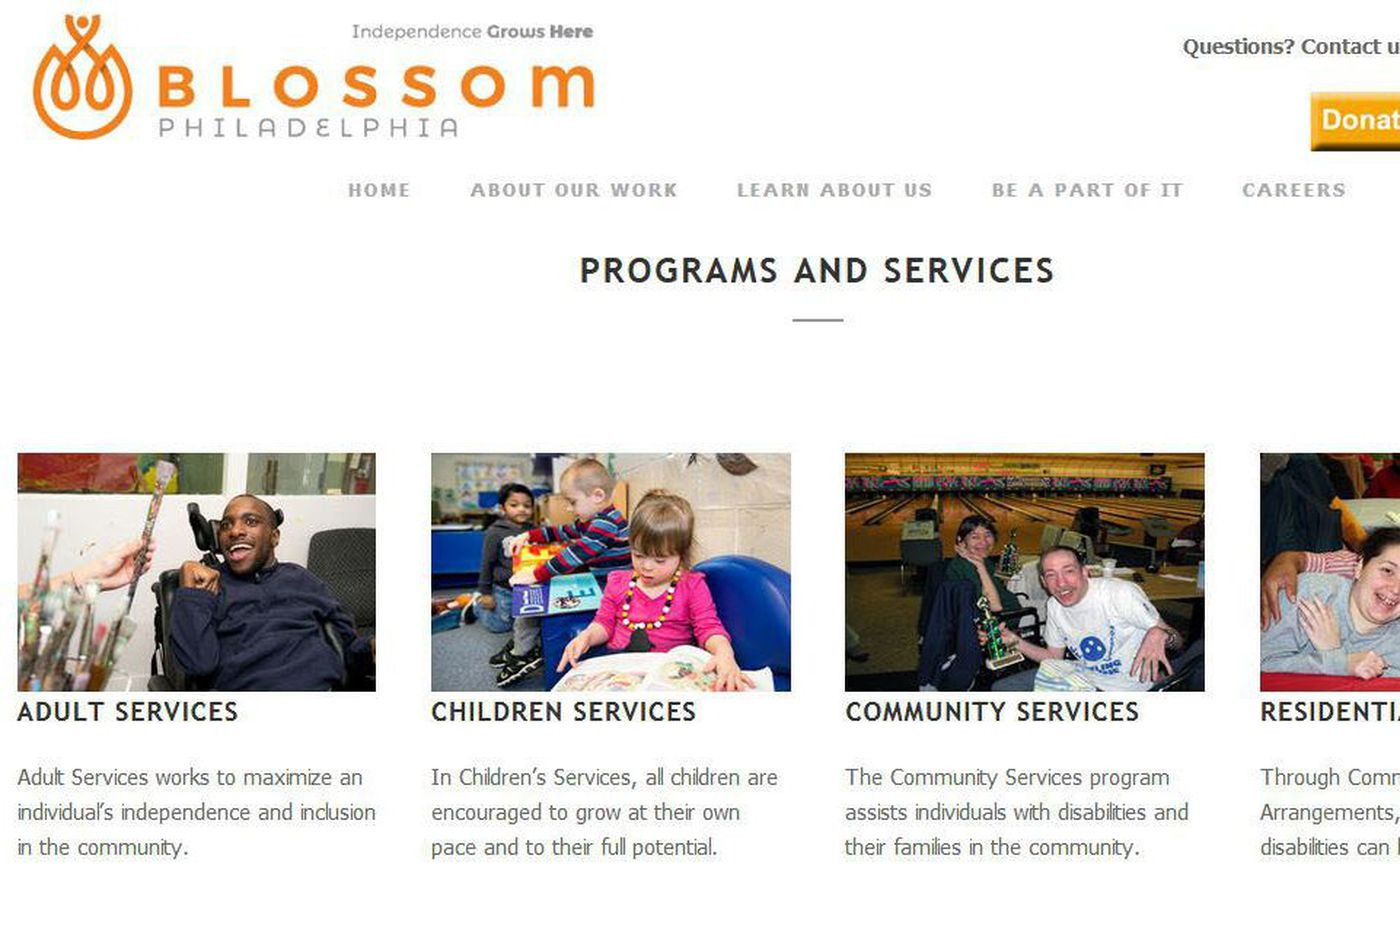 Blossom Philadelphia's deficient care for the disabled continues